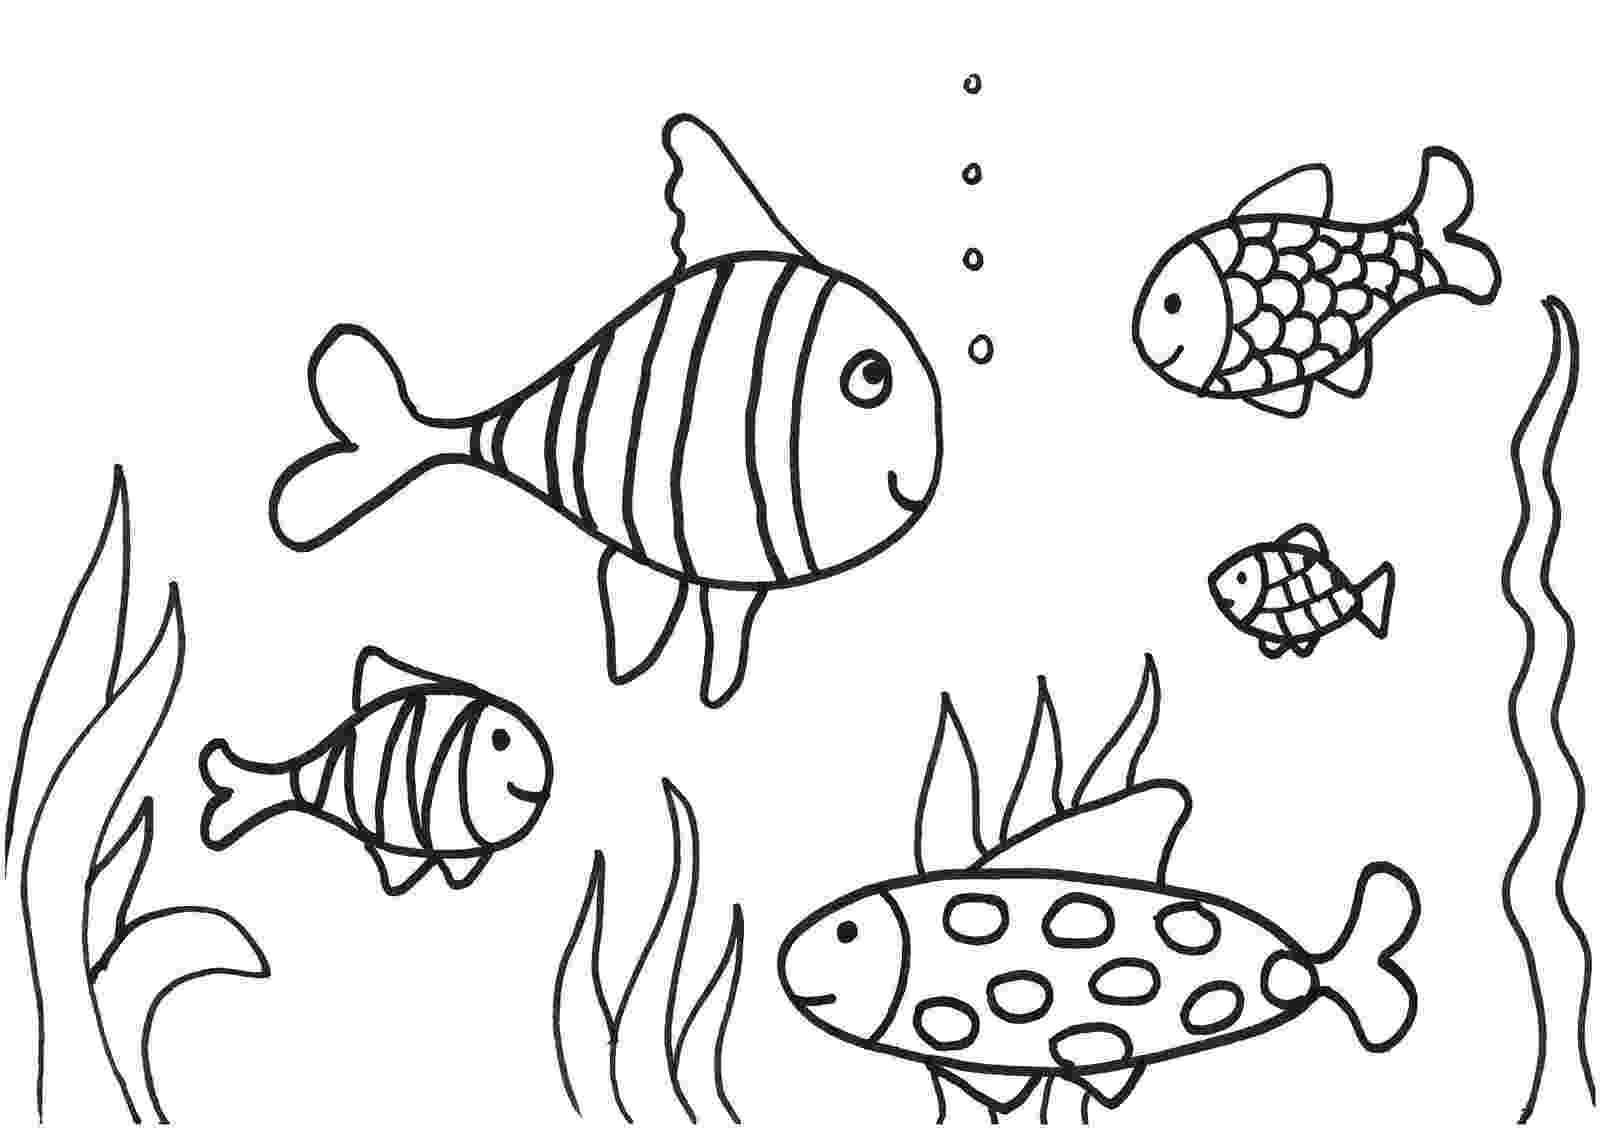 fish cartoon coloring pages fish coloring pages for kids preschool and kindergarten cartoon pages coloring fish